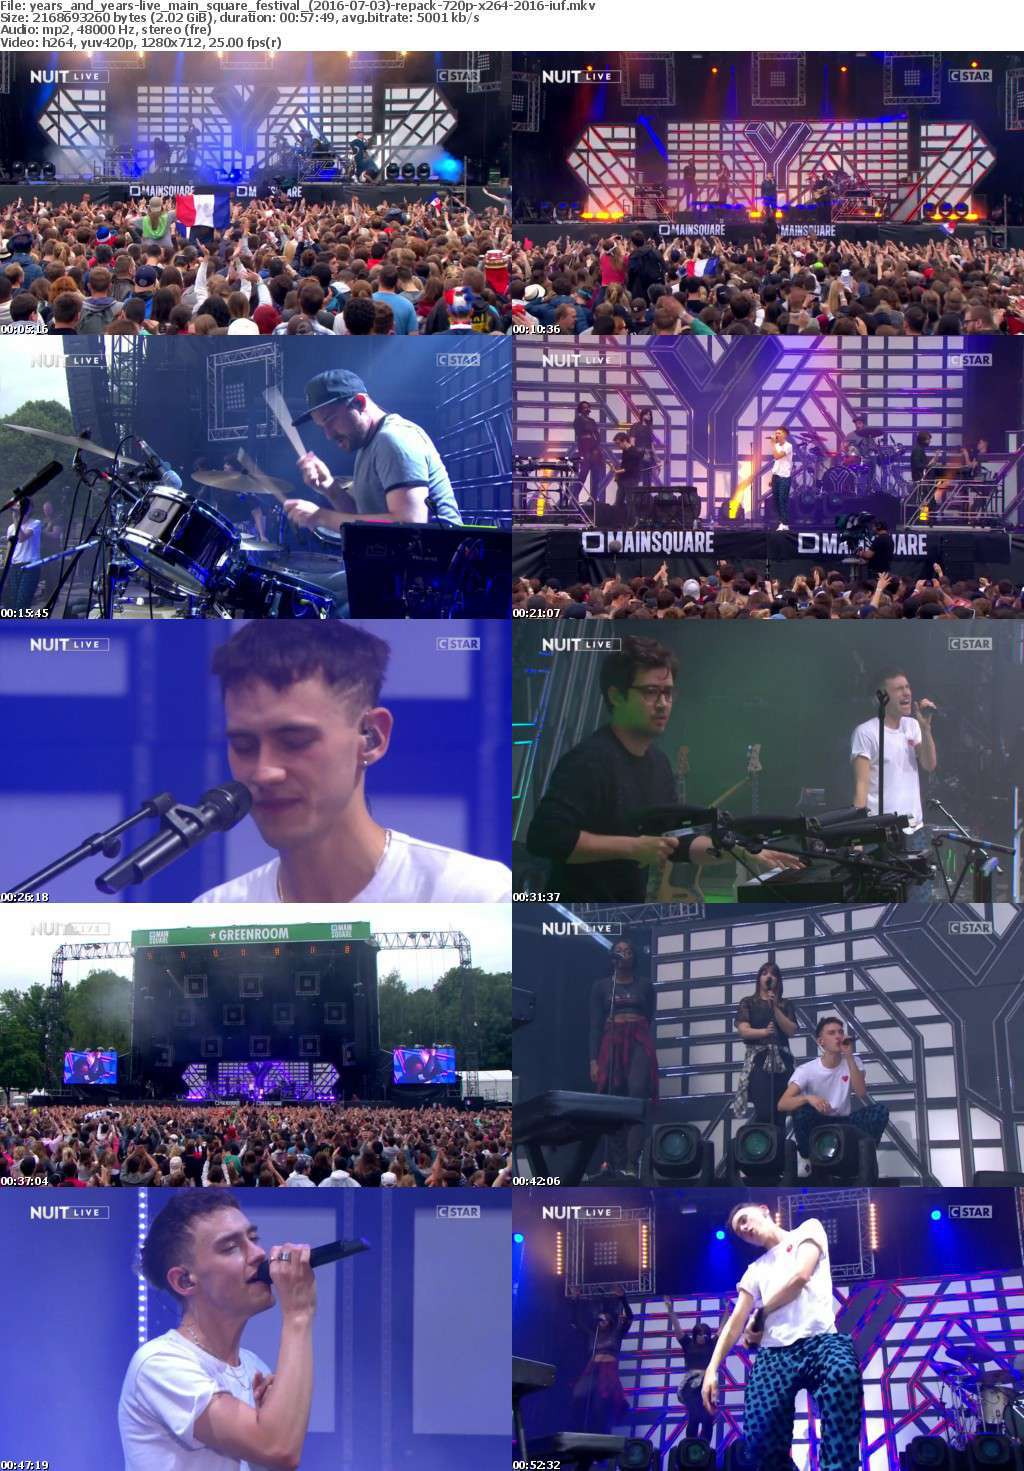 Years And Years-Live Main Square Festival (2016-07-03)-REPACK-720p-x264-2016-iUF